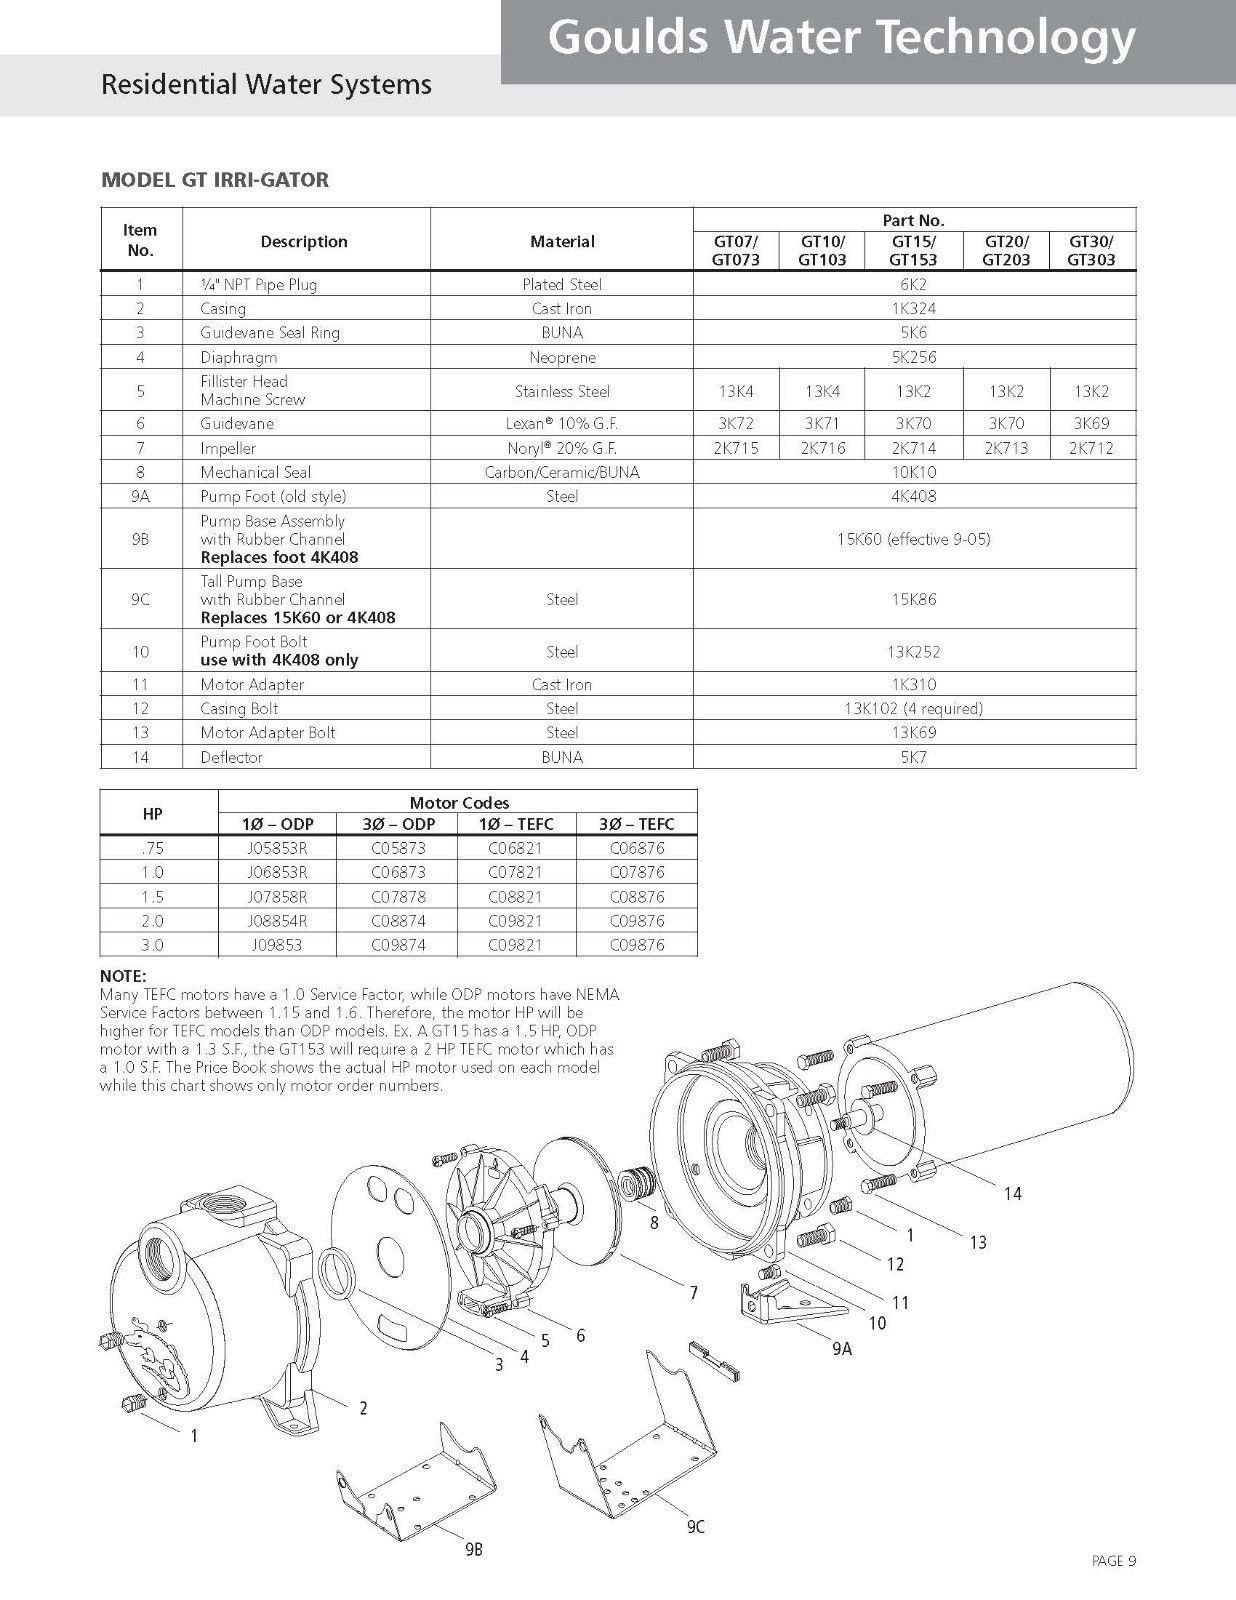 Goulds GT15KIT Repair Rebuild Kit for GT15 by Goulds